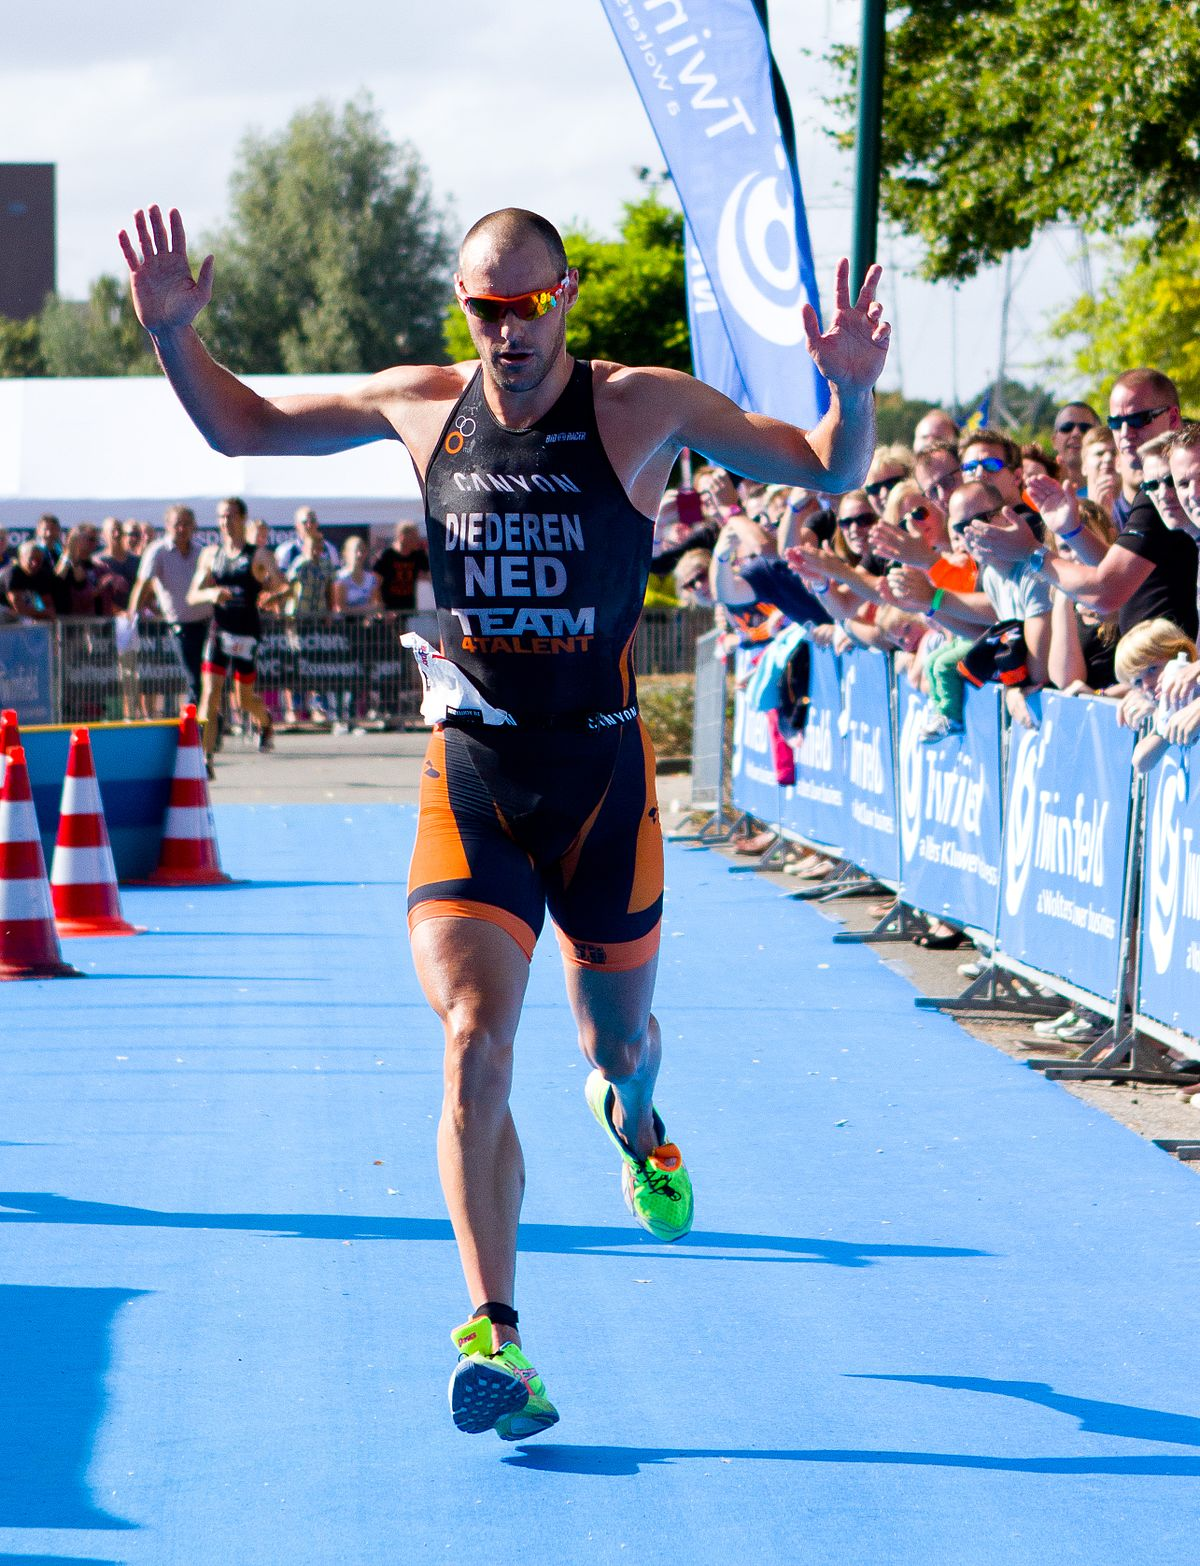 best advice for triathlon, a man running to finish the race